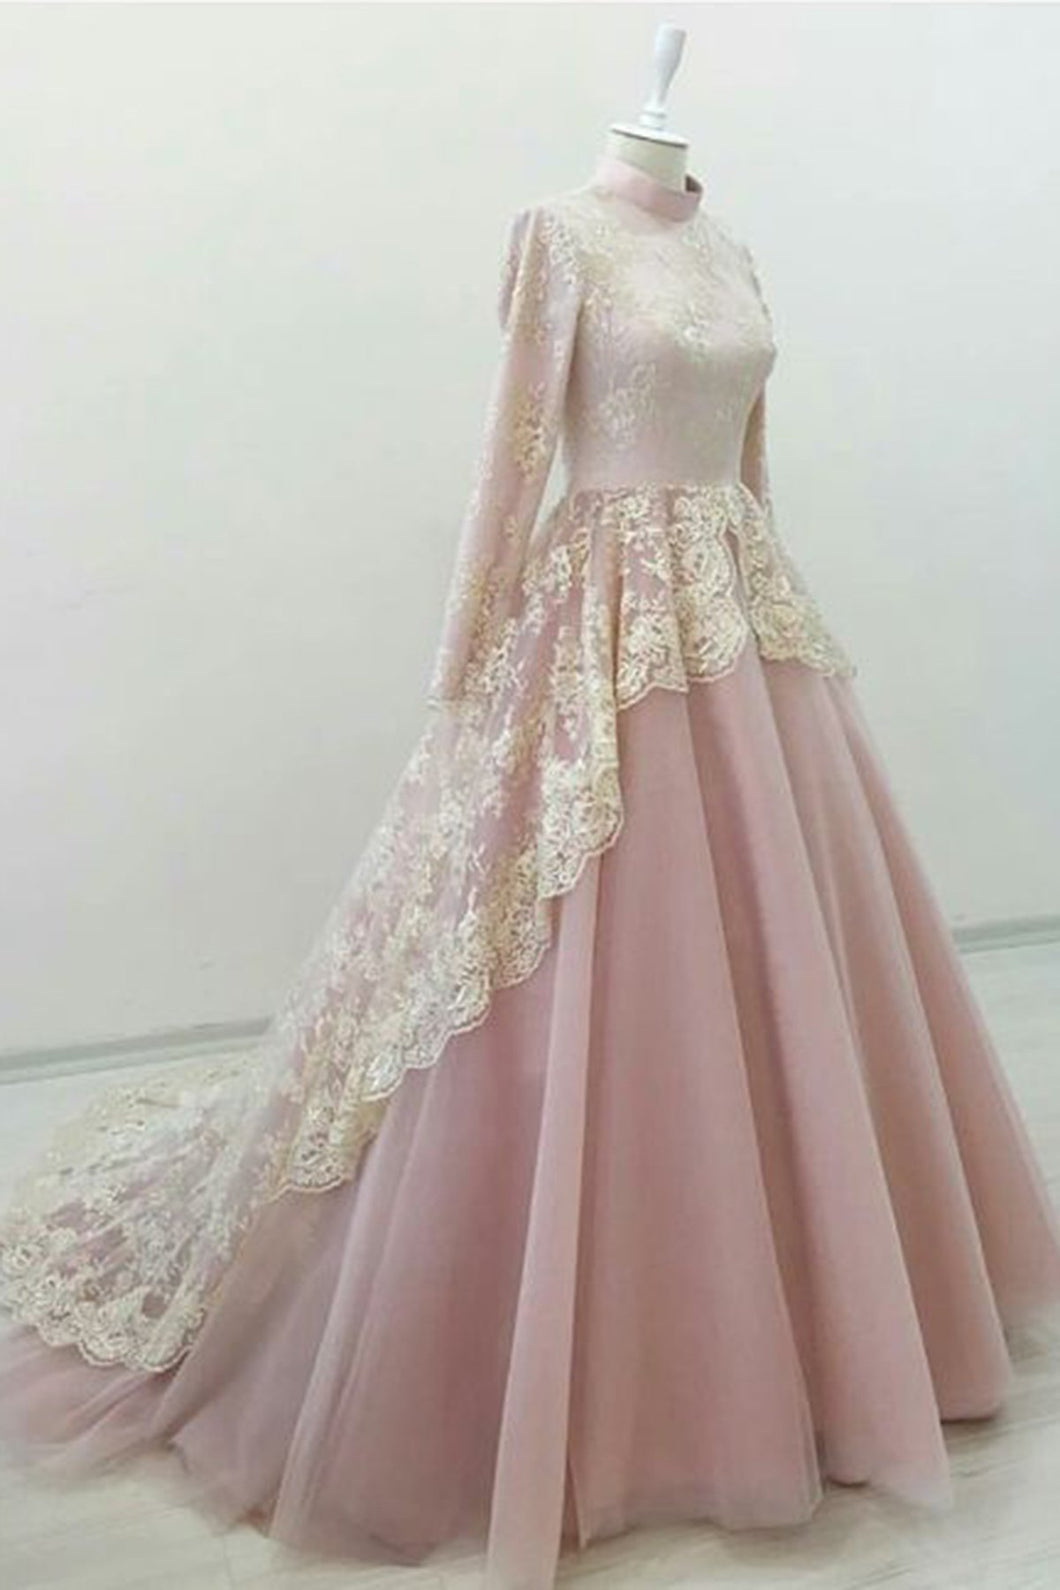 Sweet 16 Dresses | Pink tulle high neck court train evening dress with long sleeves